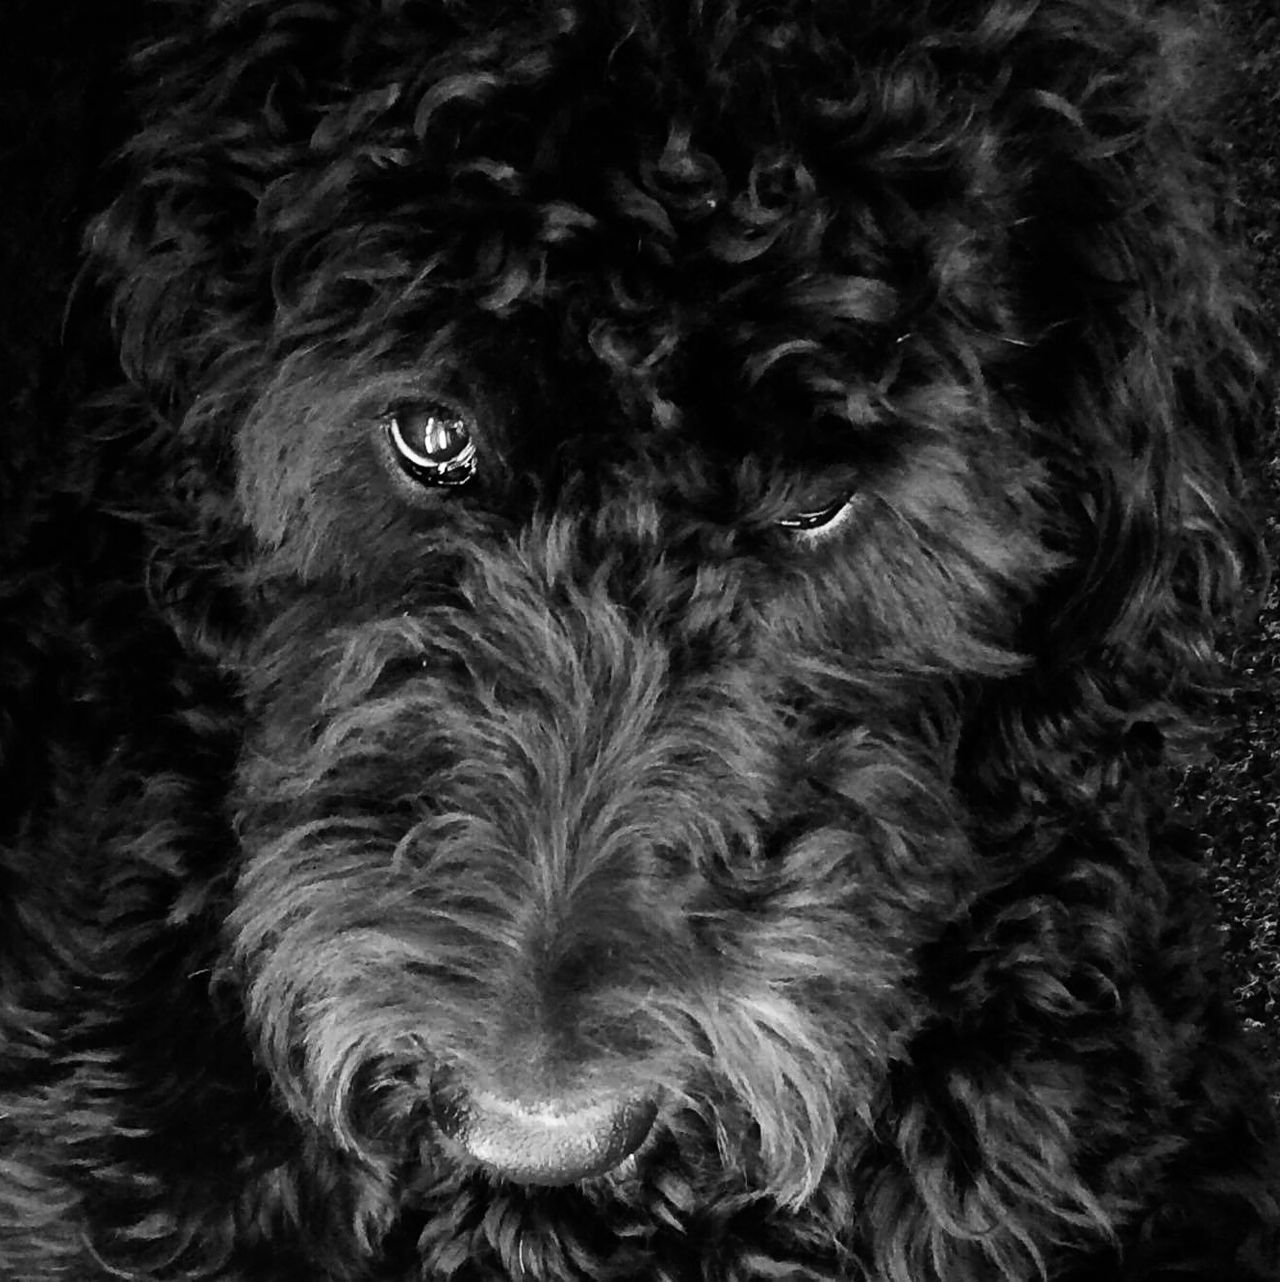 Maddy the Labradoodle Labradoodle Dogs Animals Pets Blackandwhite Smartphonephotography Squarecrop Snapseed